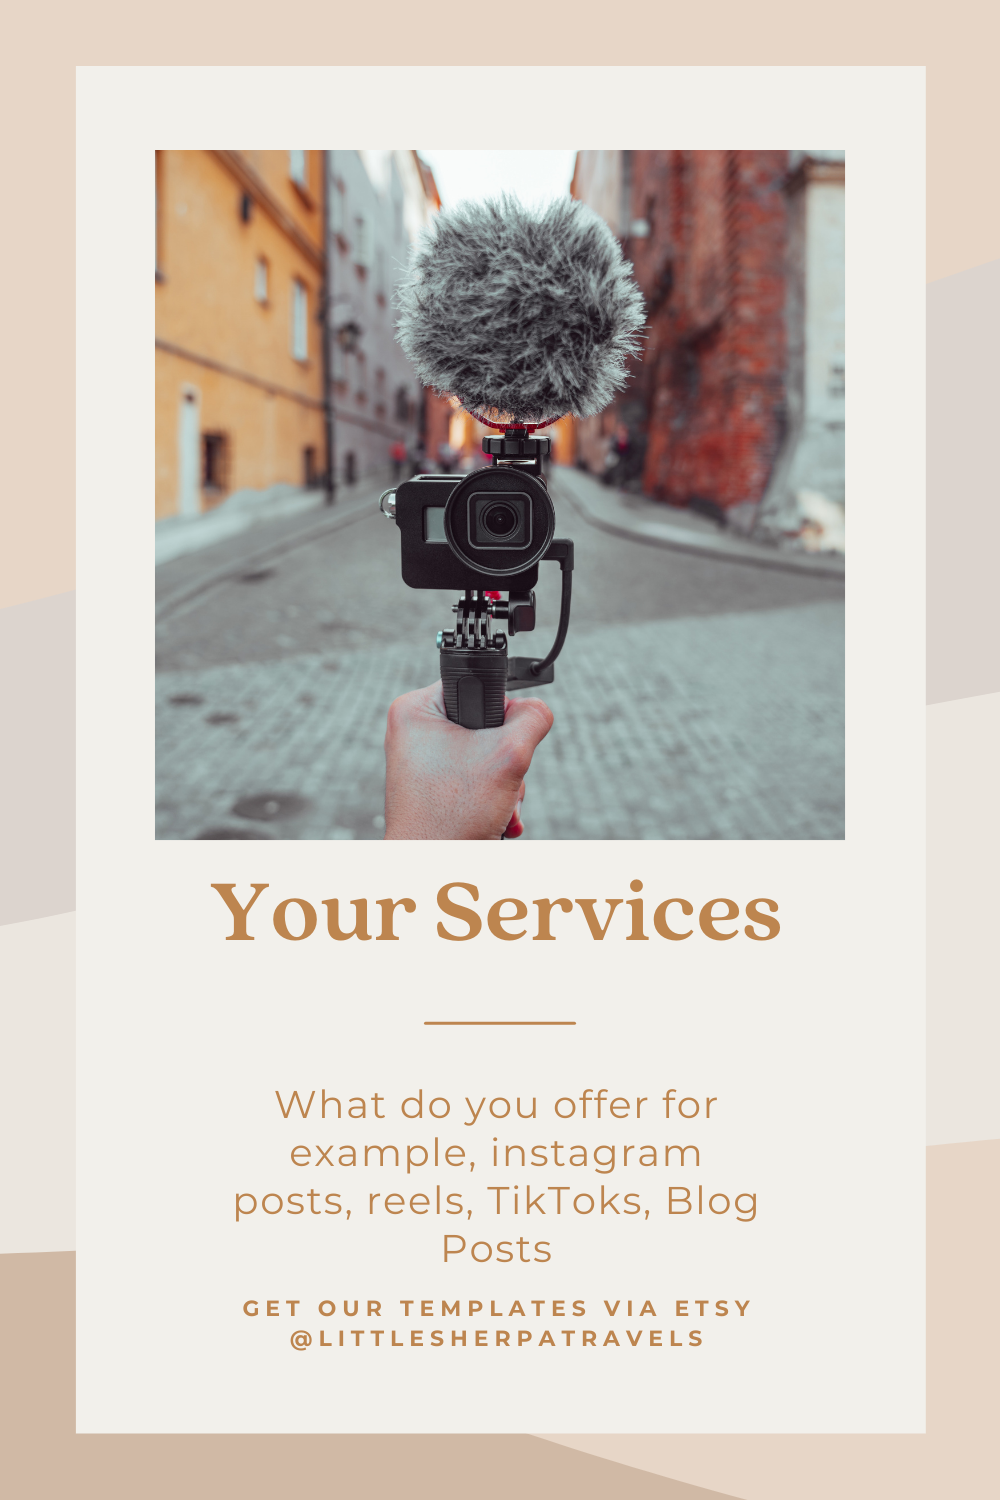 Media Kit essential elements: Your Services